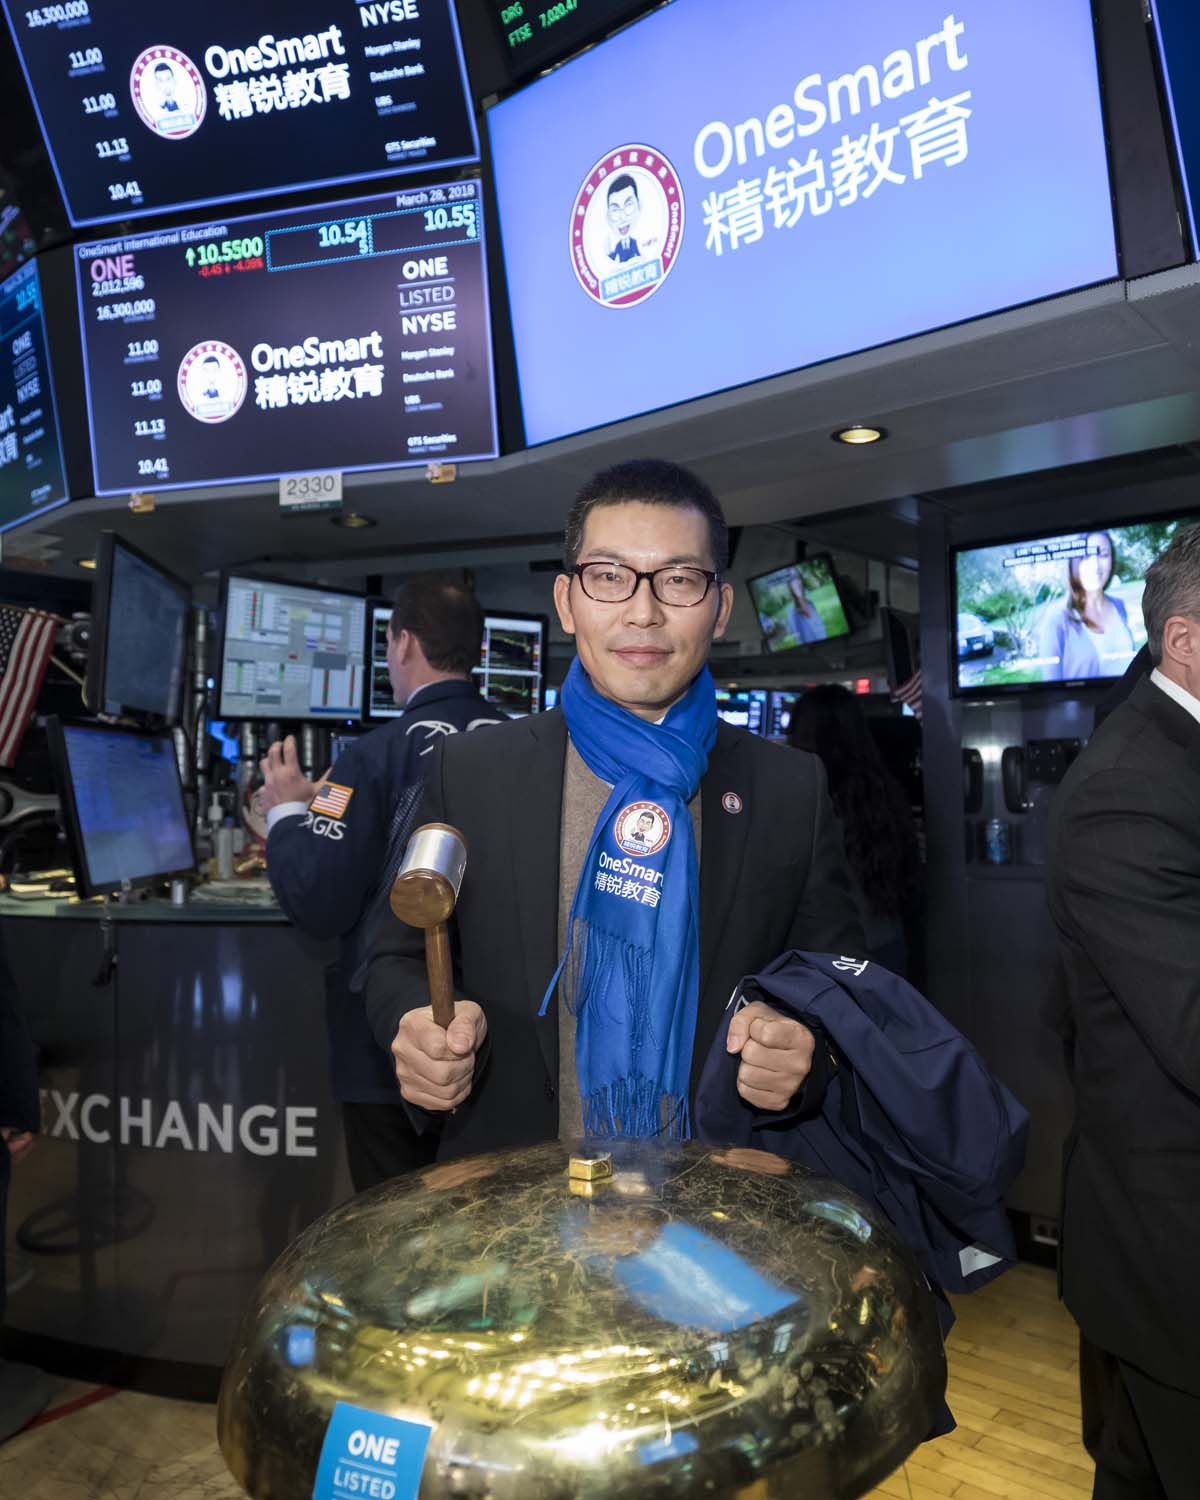 NYSE Photographer IPO on Wall Street in New York City